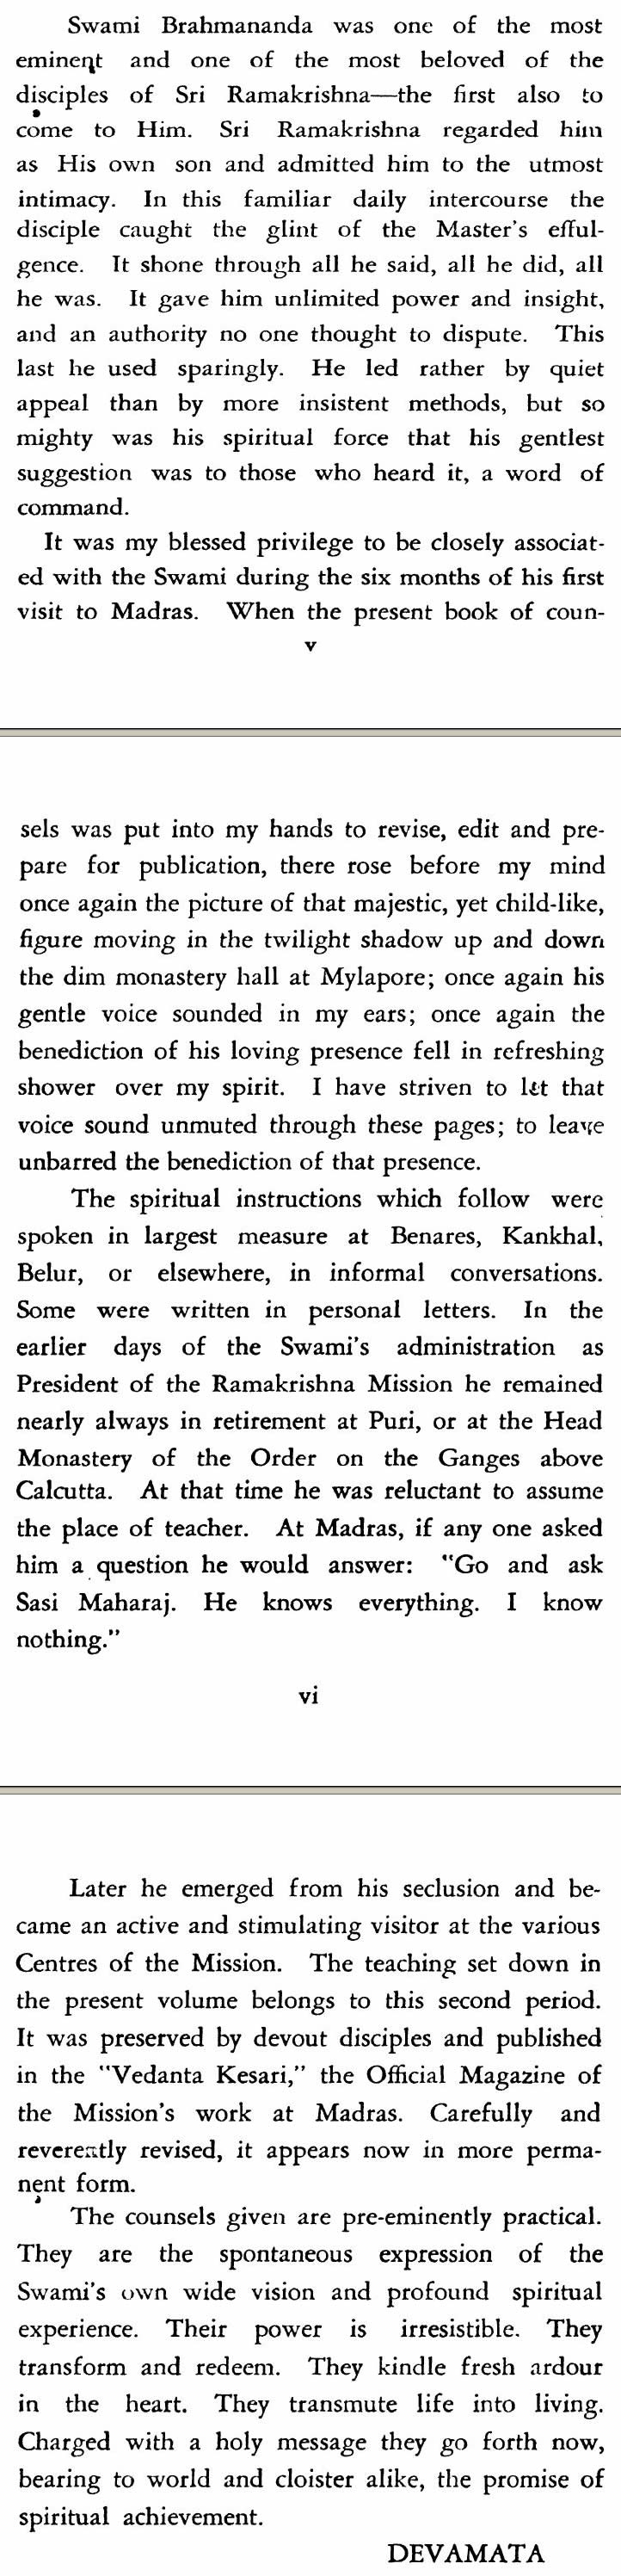 Swami Brahmananda Reminisceneces by Sister Devamata